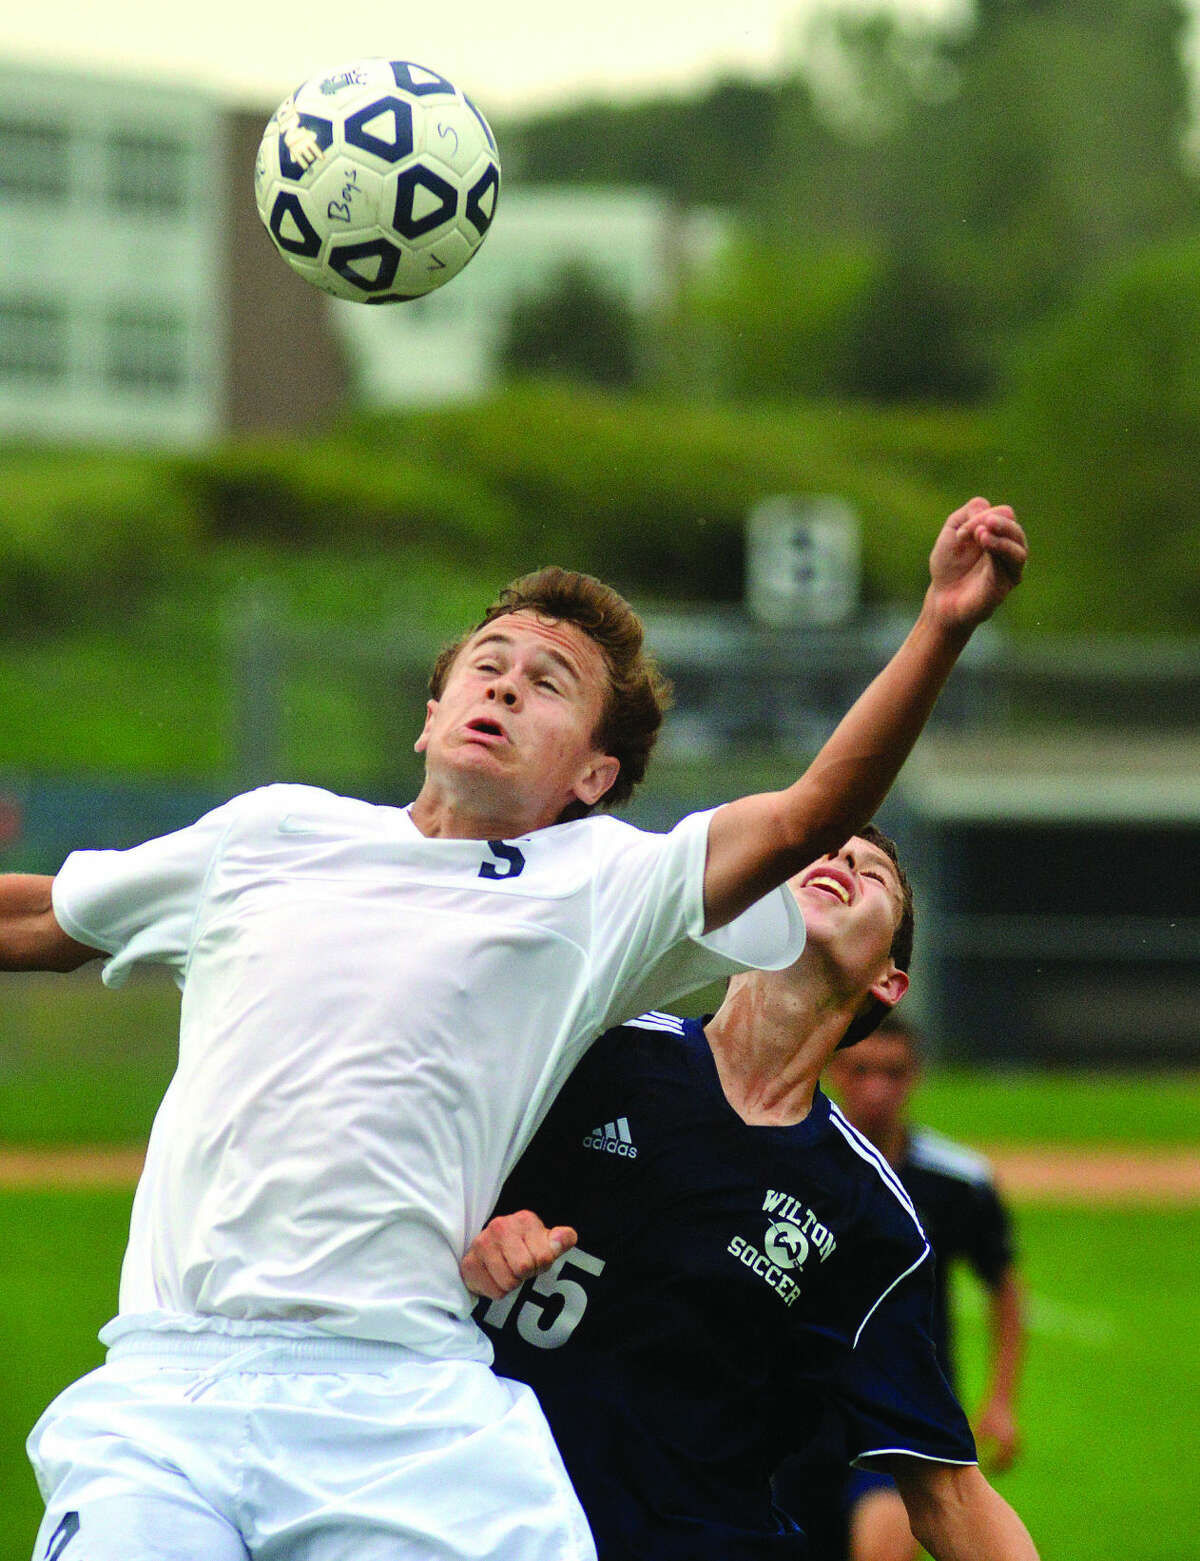 Hour Photo/Alex von Kleydorff Staples' Graham Gudis, front, jumps for a ball over a Wilton player during Thursday's game.